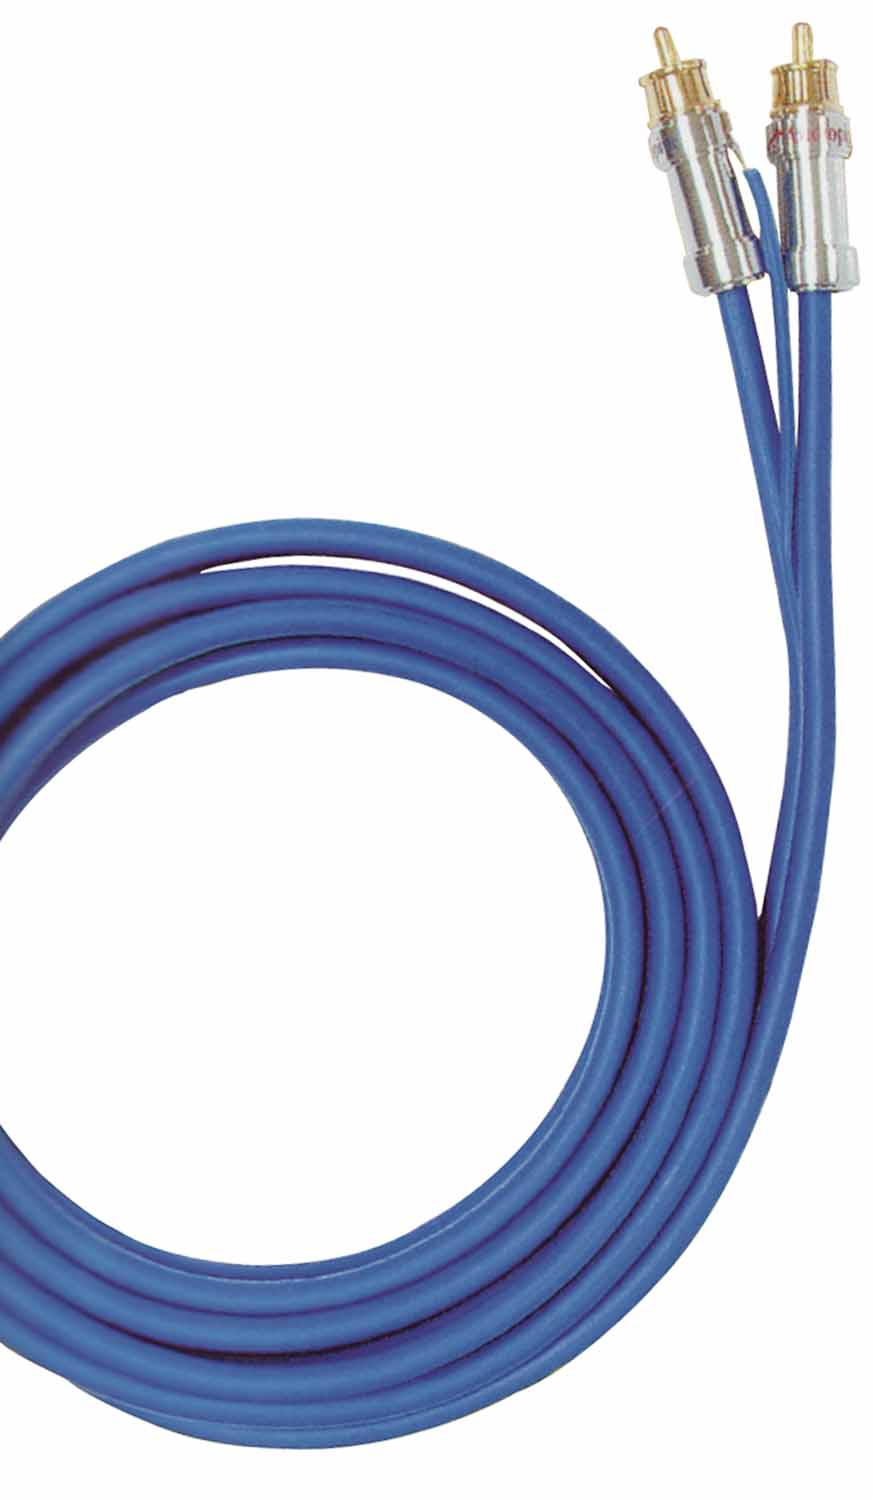 CMP6 - Audiopipe 6' Oxygen Free Professional Stereo Cable